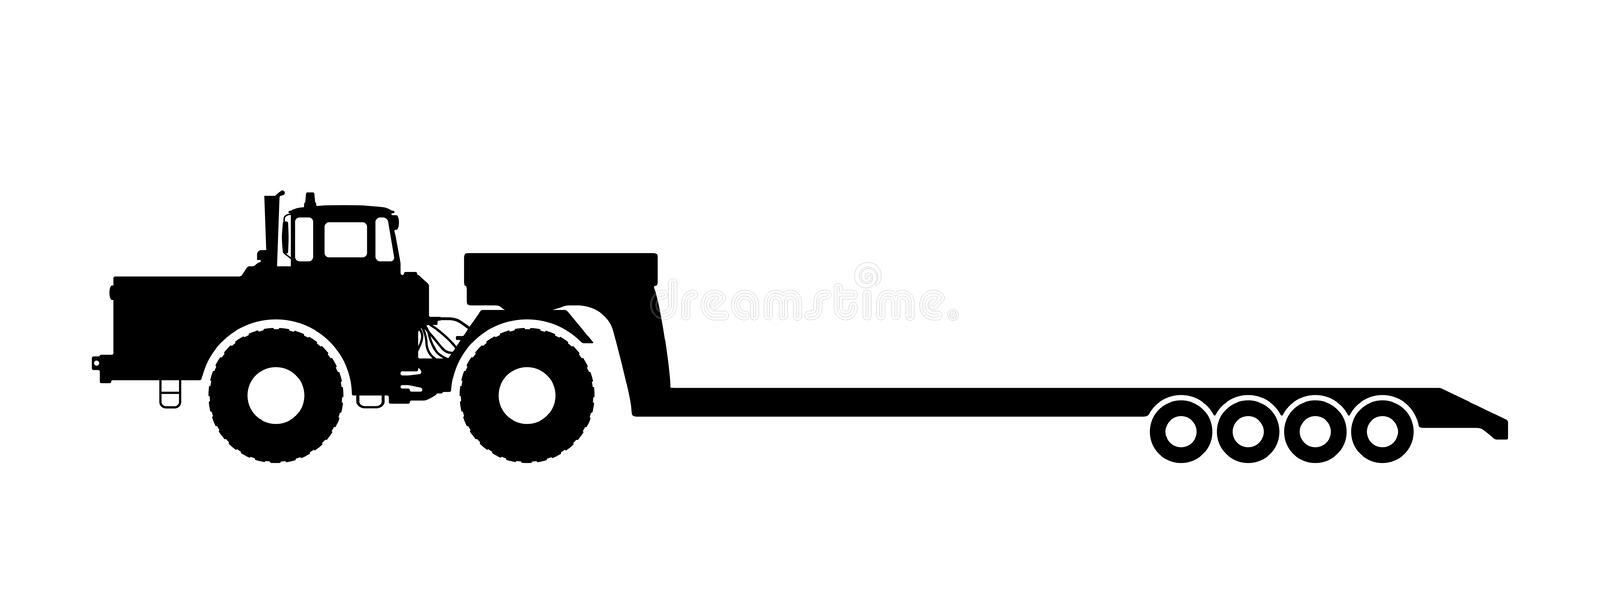 Silhouette of a tractor with a trailer. Vector illustration of a silhouette of a tractor on a white background vector illustration